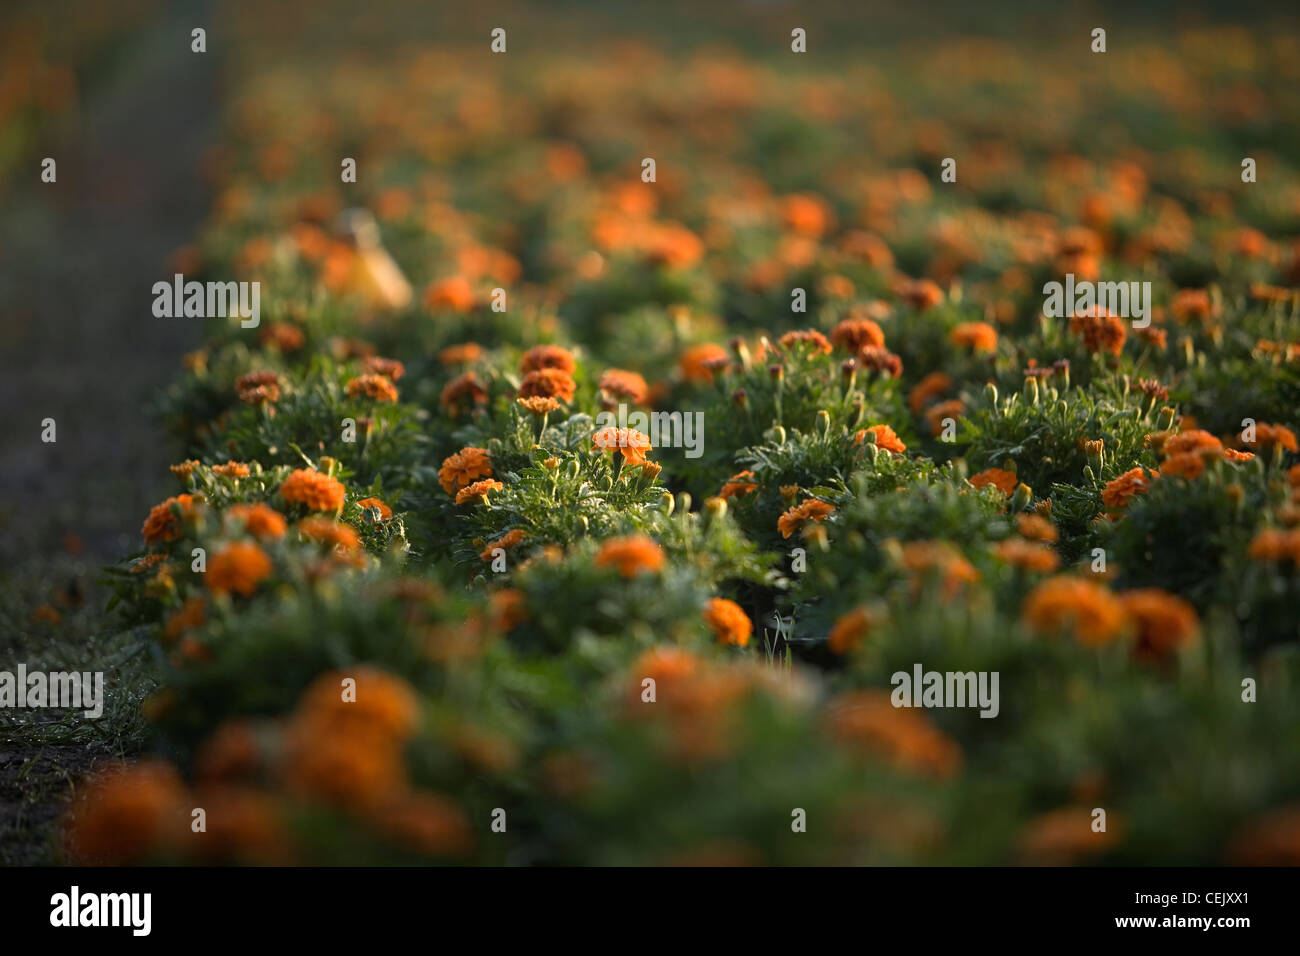 Yellow marigold flowers, known as cempasuchil, before the harvest in Mexico City - Stock Image